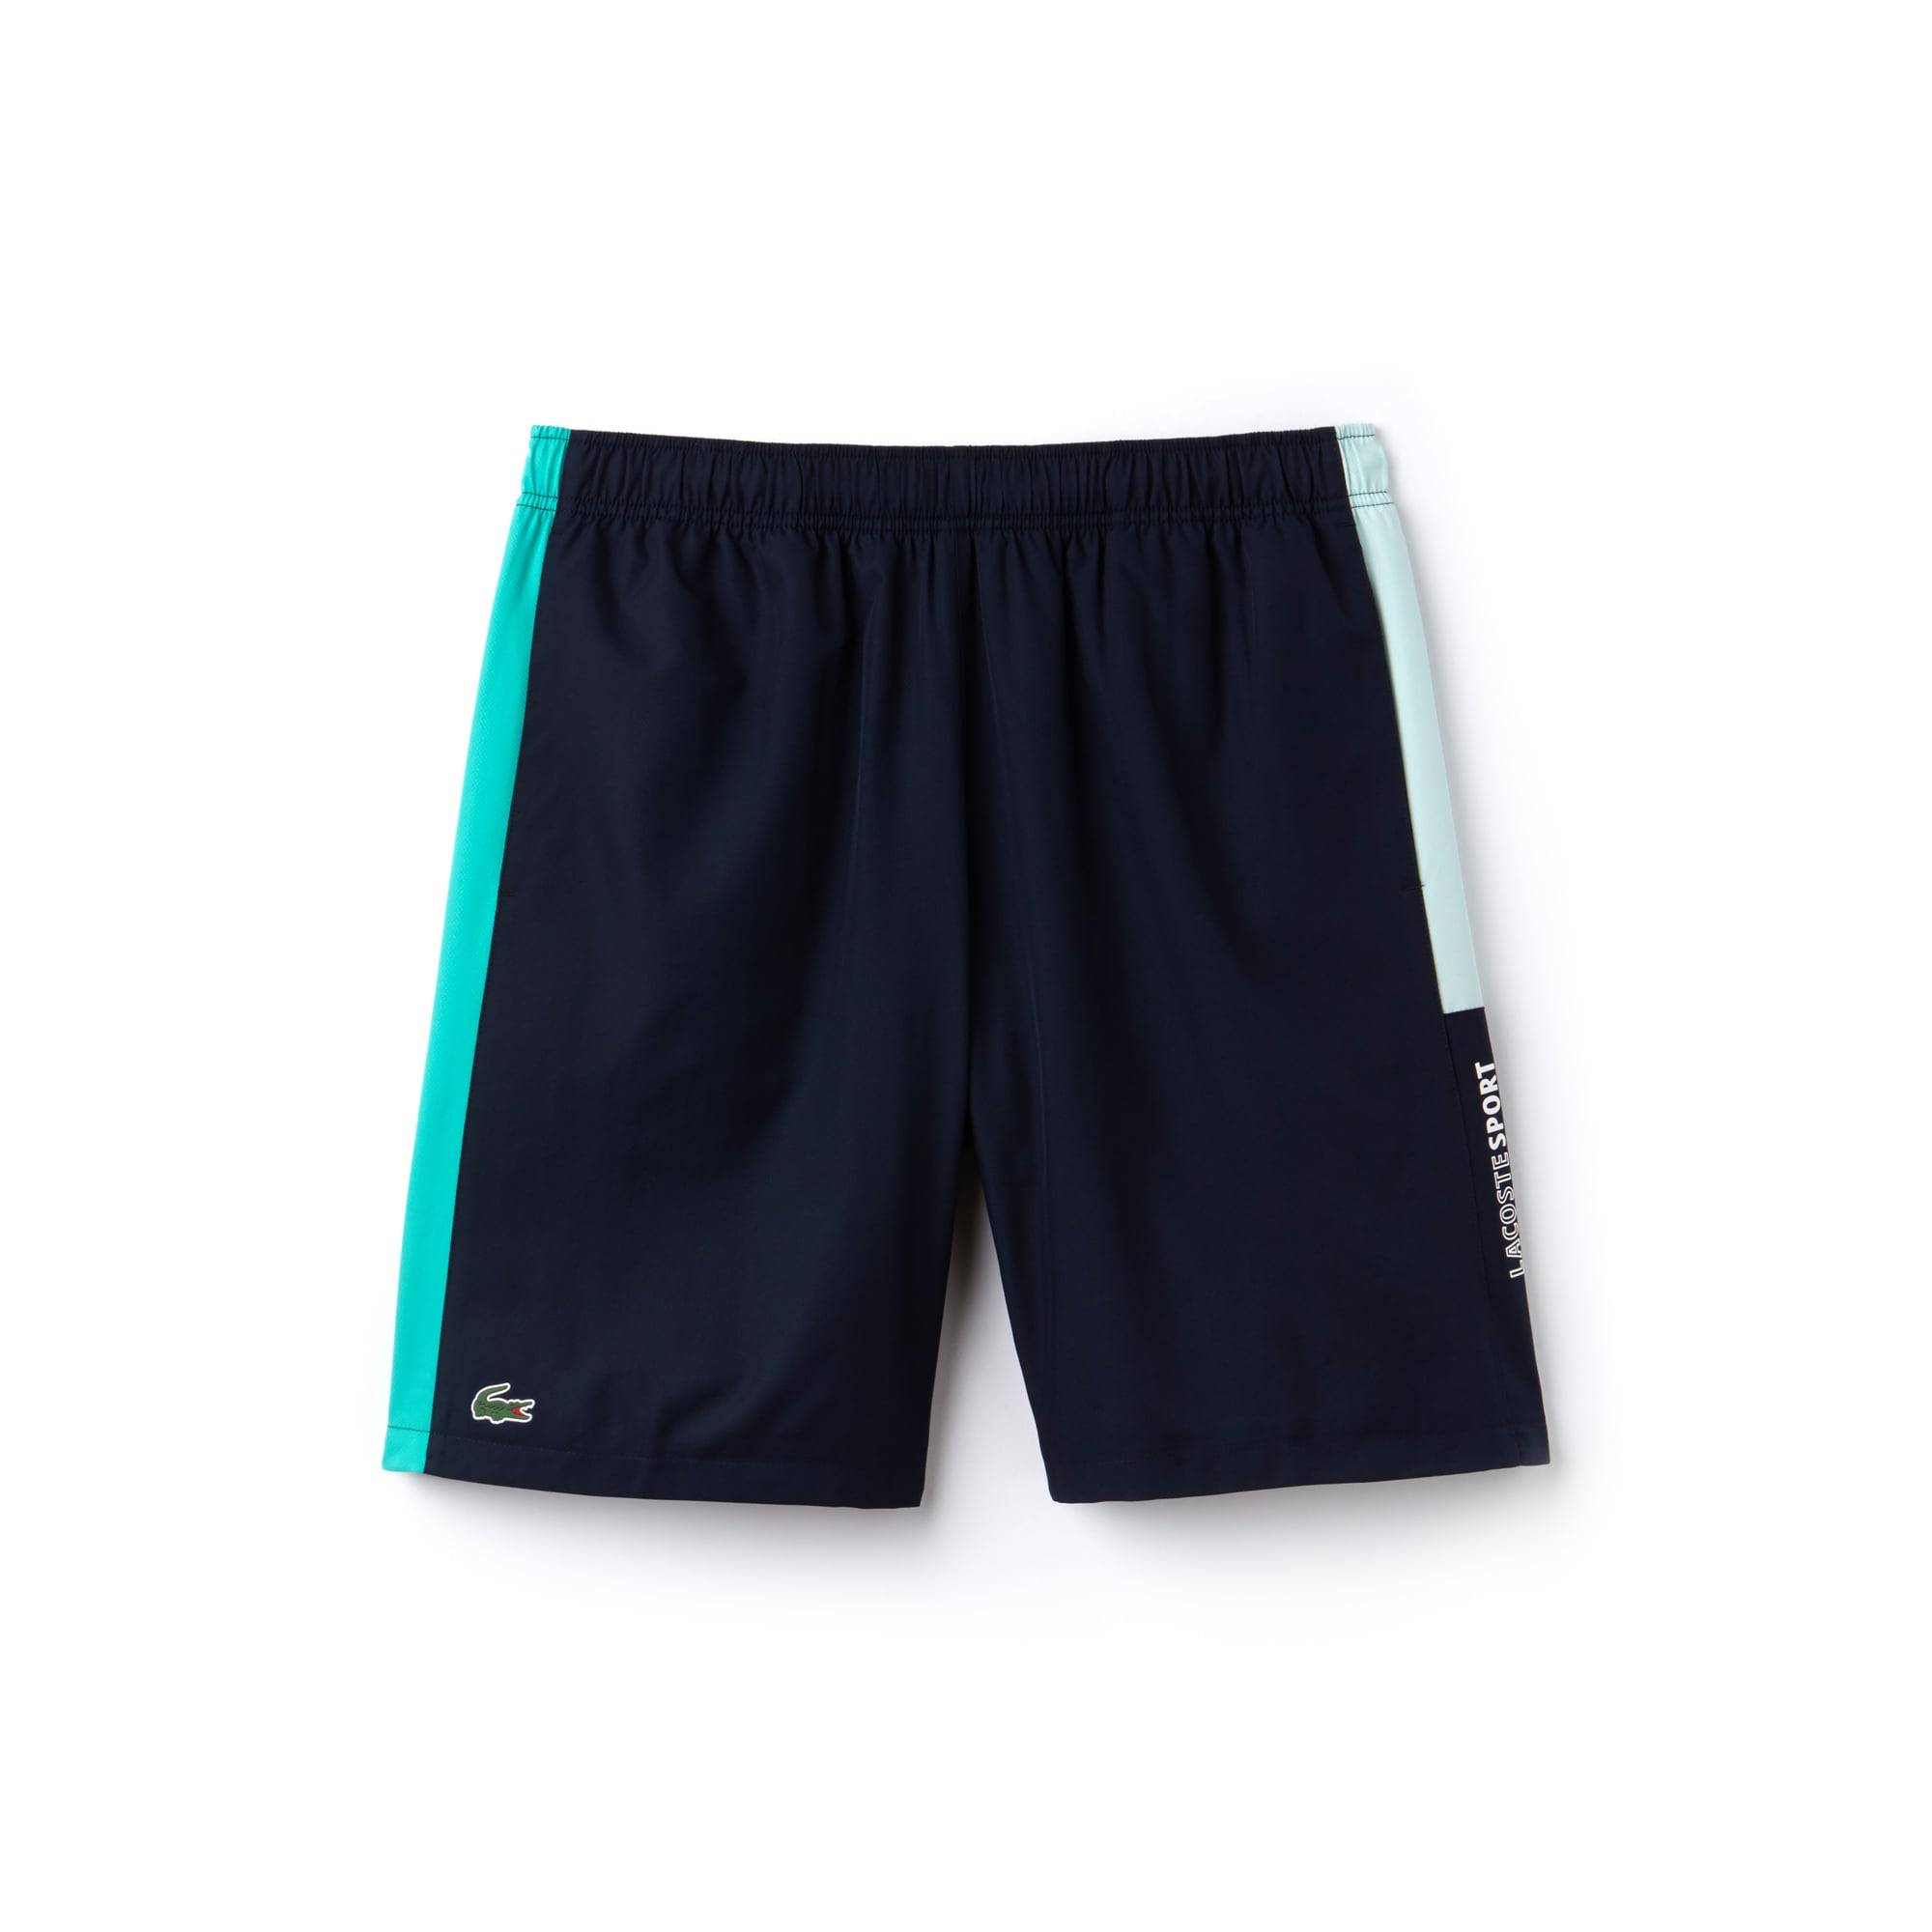 Men's SPORT coloured Bands Taffeta Tennis Shorts